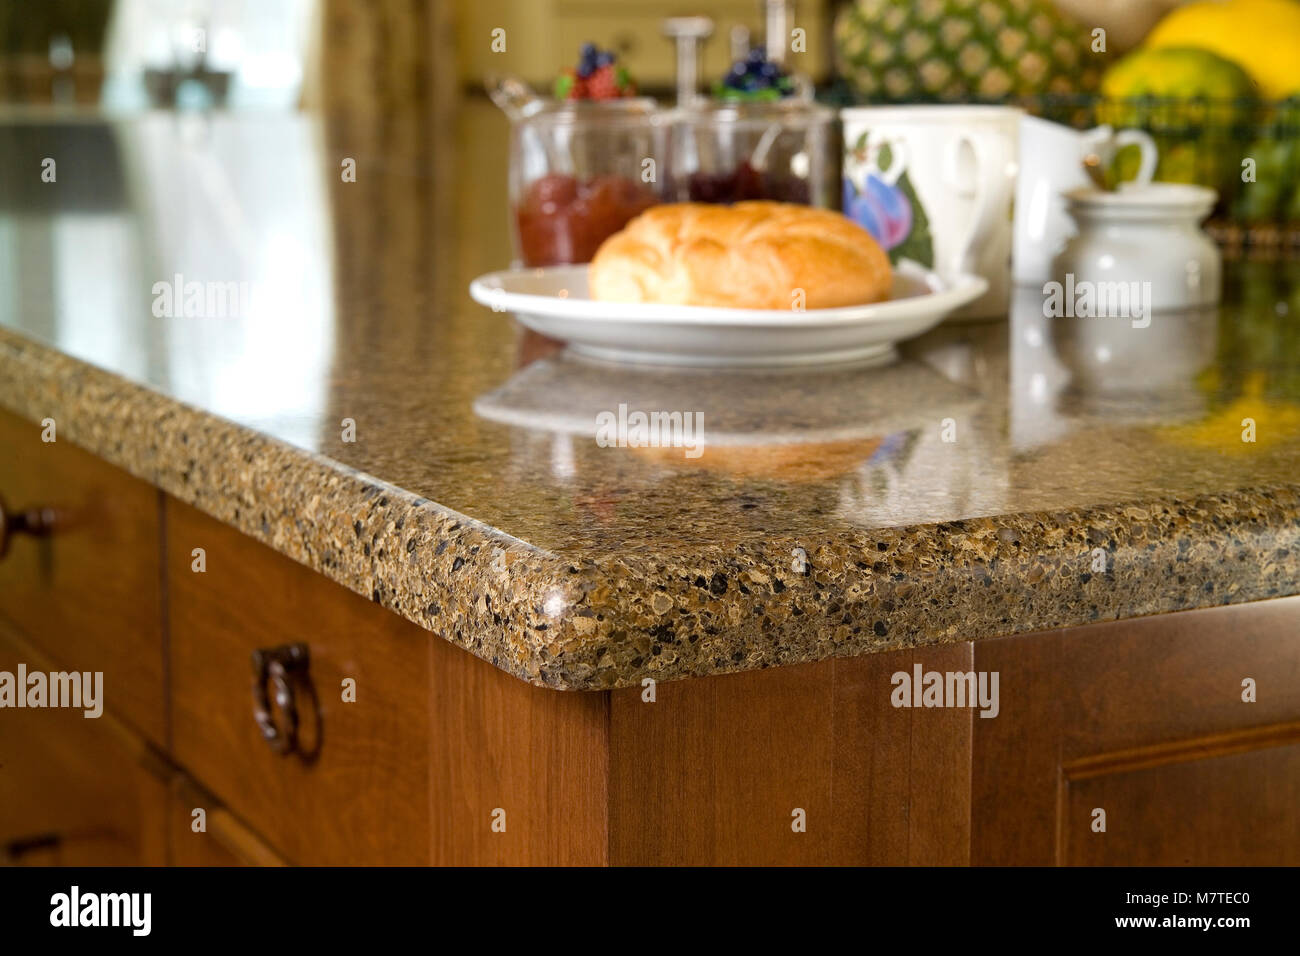 Planche En Granit Pour Cuisine granite countertop photos & granite countertop images - alamy